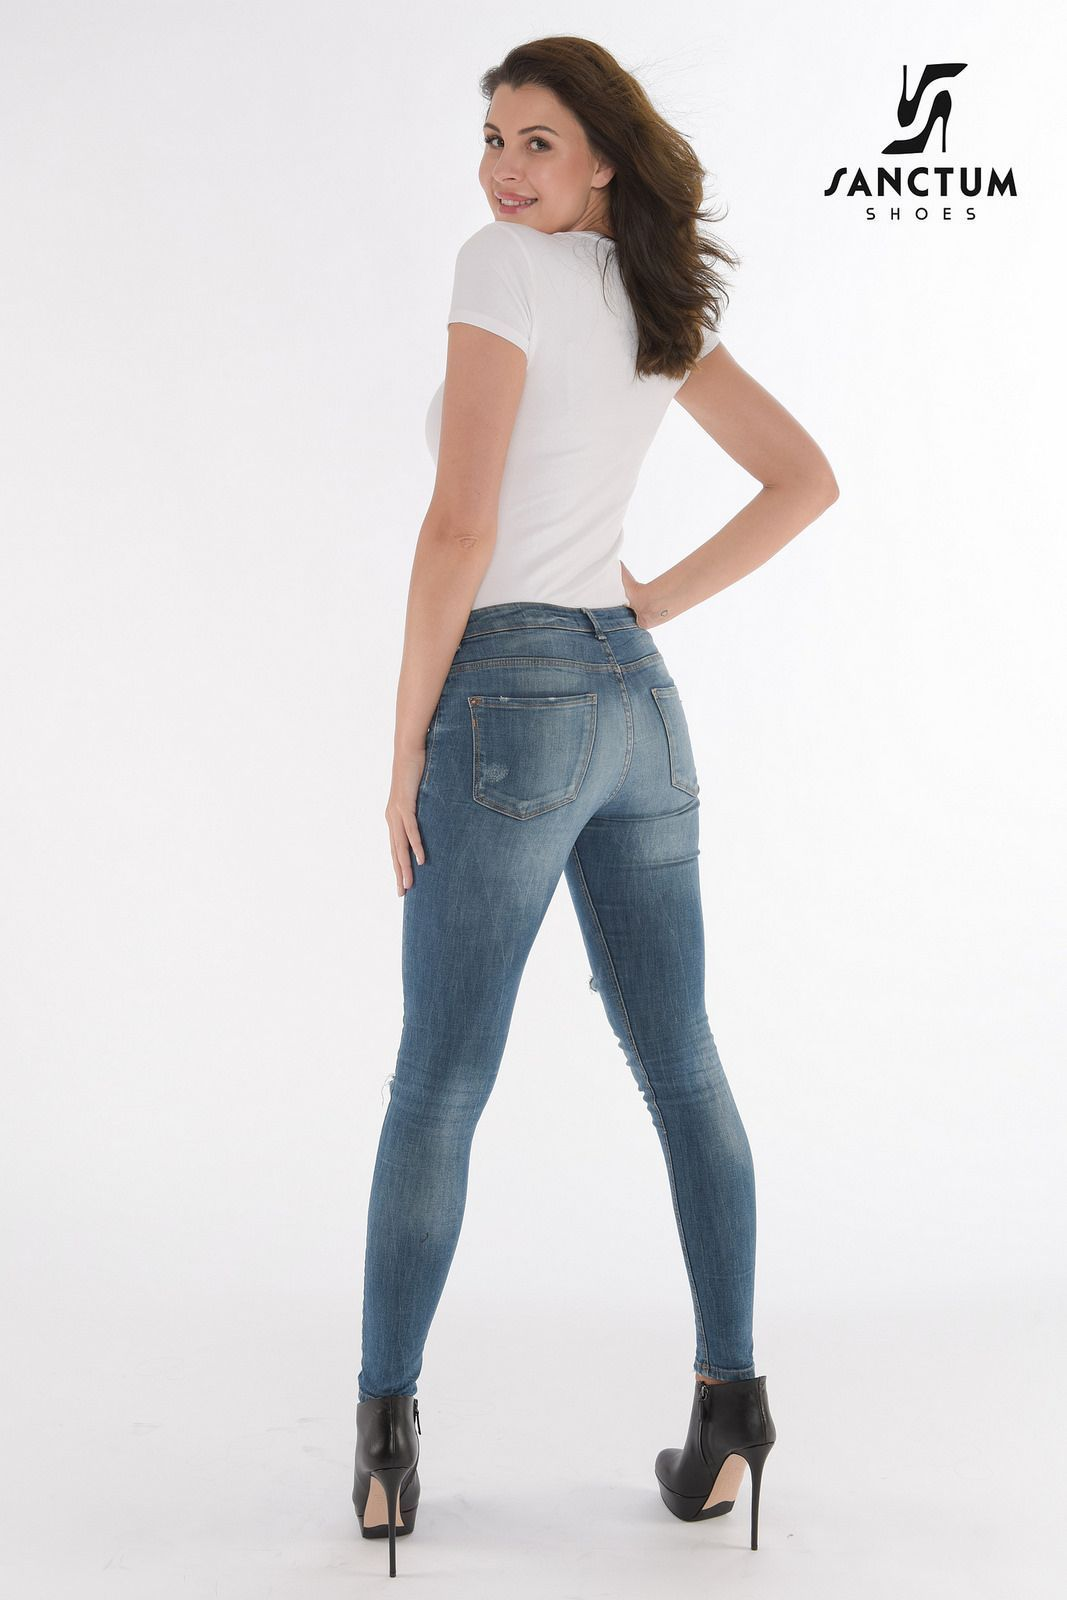 Tight jeans high heels